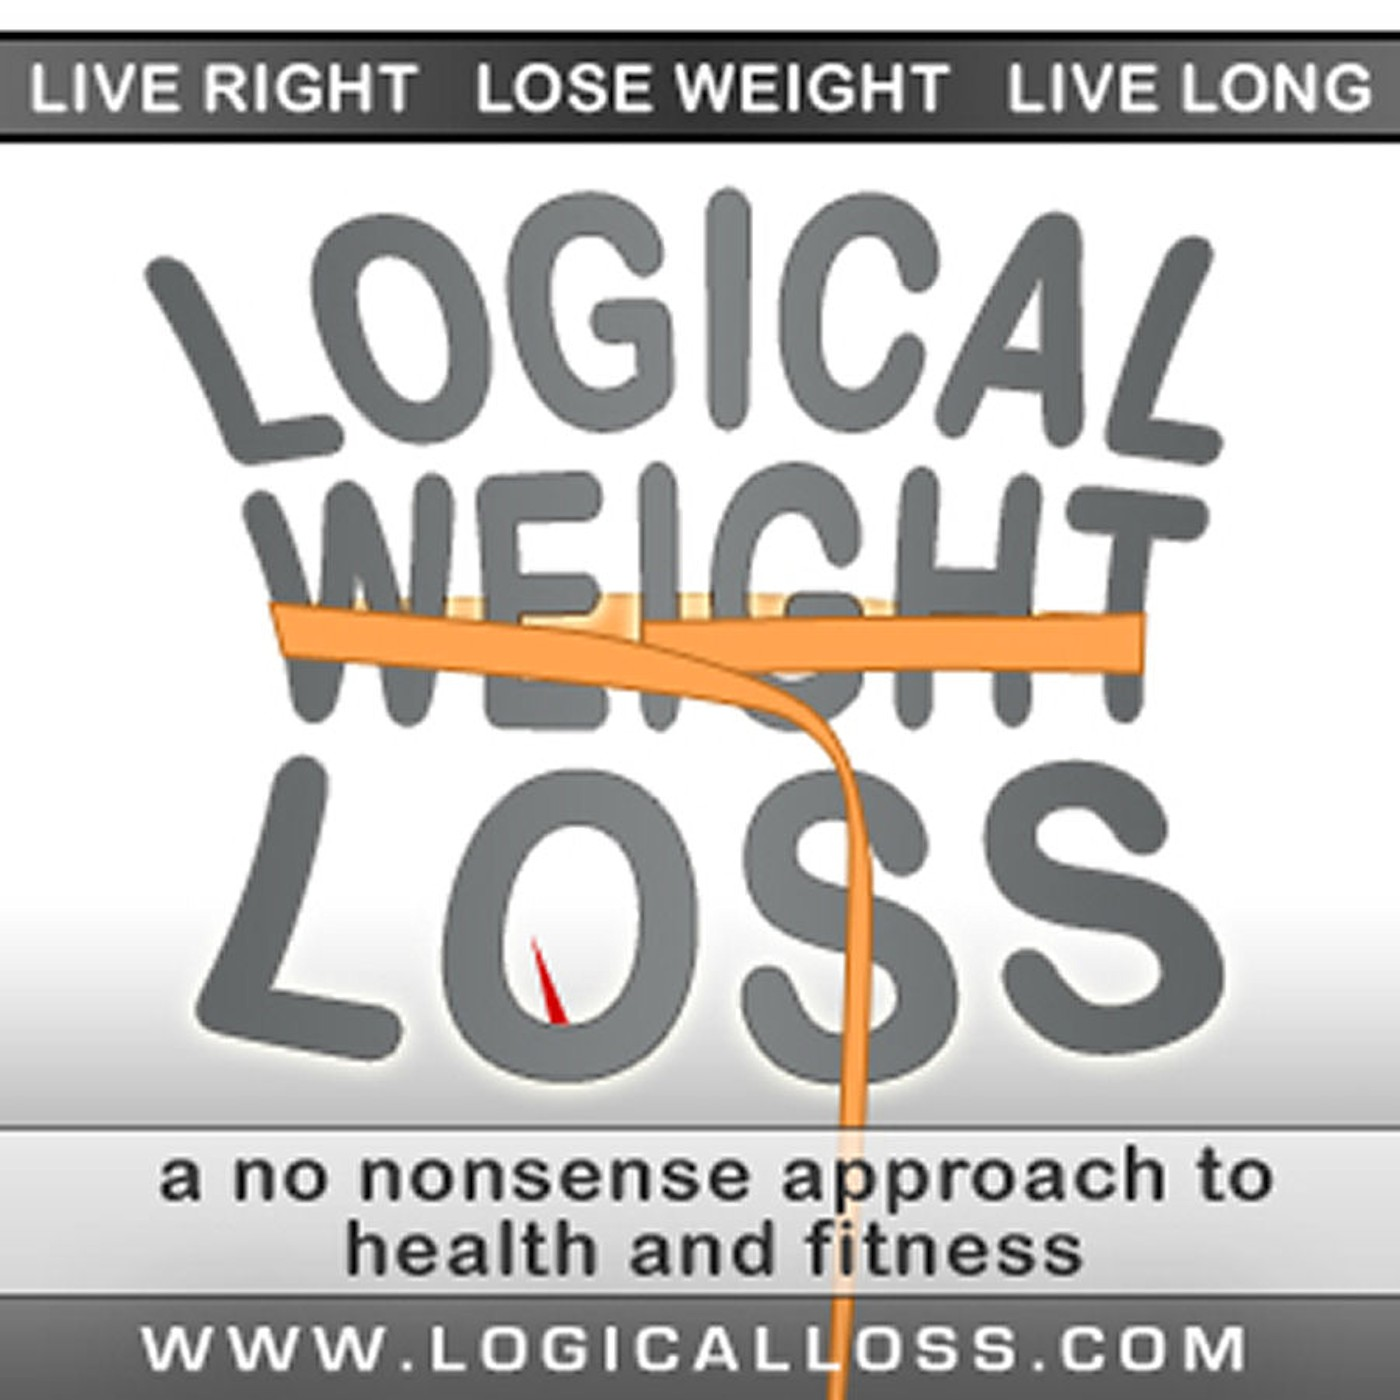 Artwork for Weight-Loss Hacks: 10 Ways to Stay Motivated